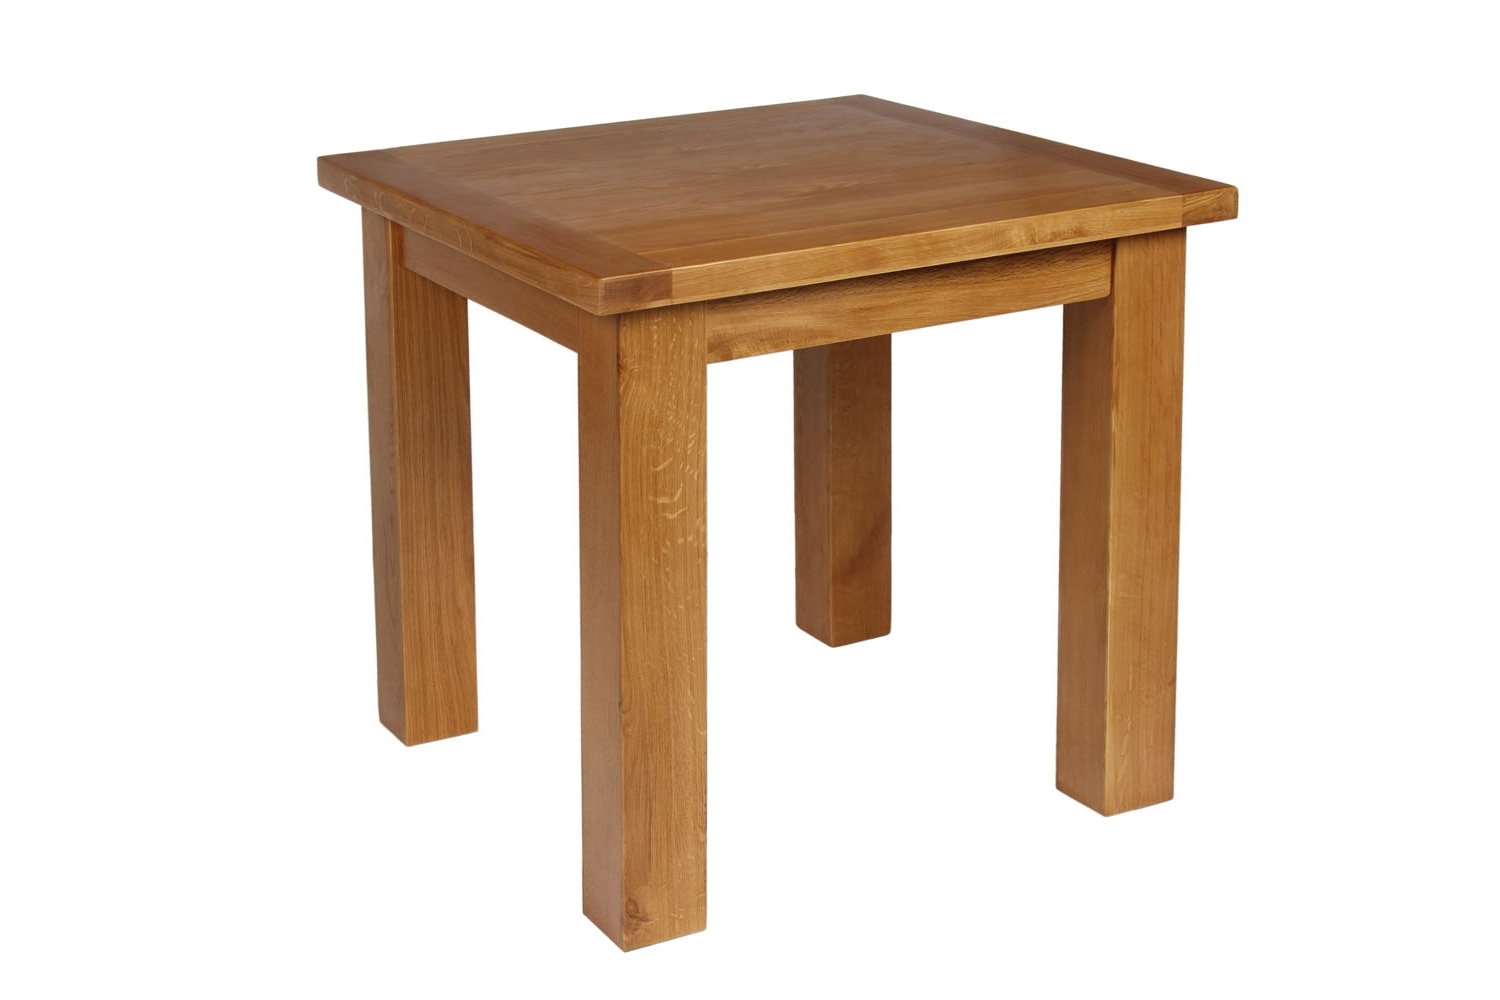 Square Oak Dining Tables Inside Well Known Small Square Oak Dining Table – Free Delivery (View 7 of 25)